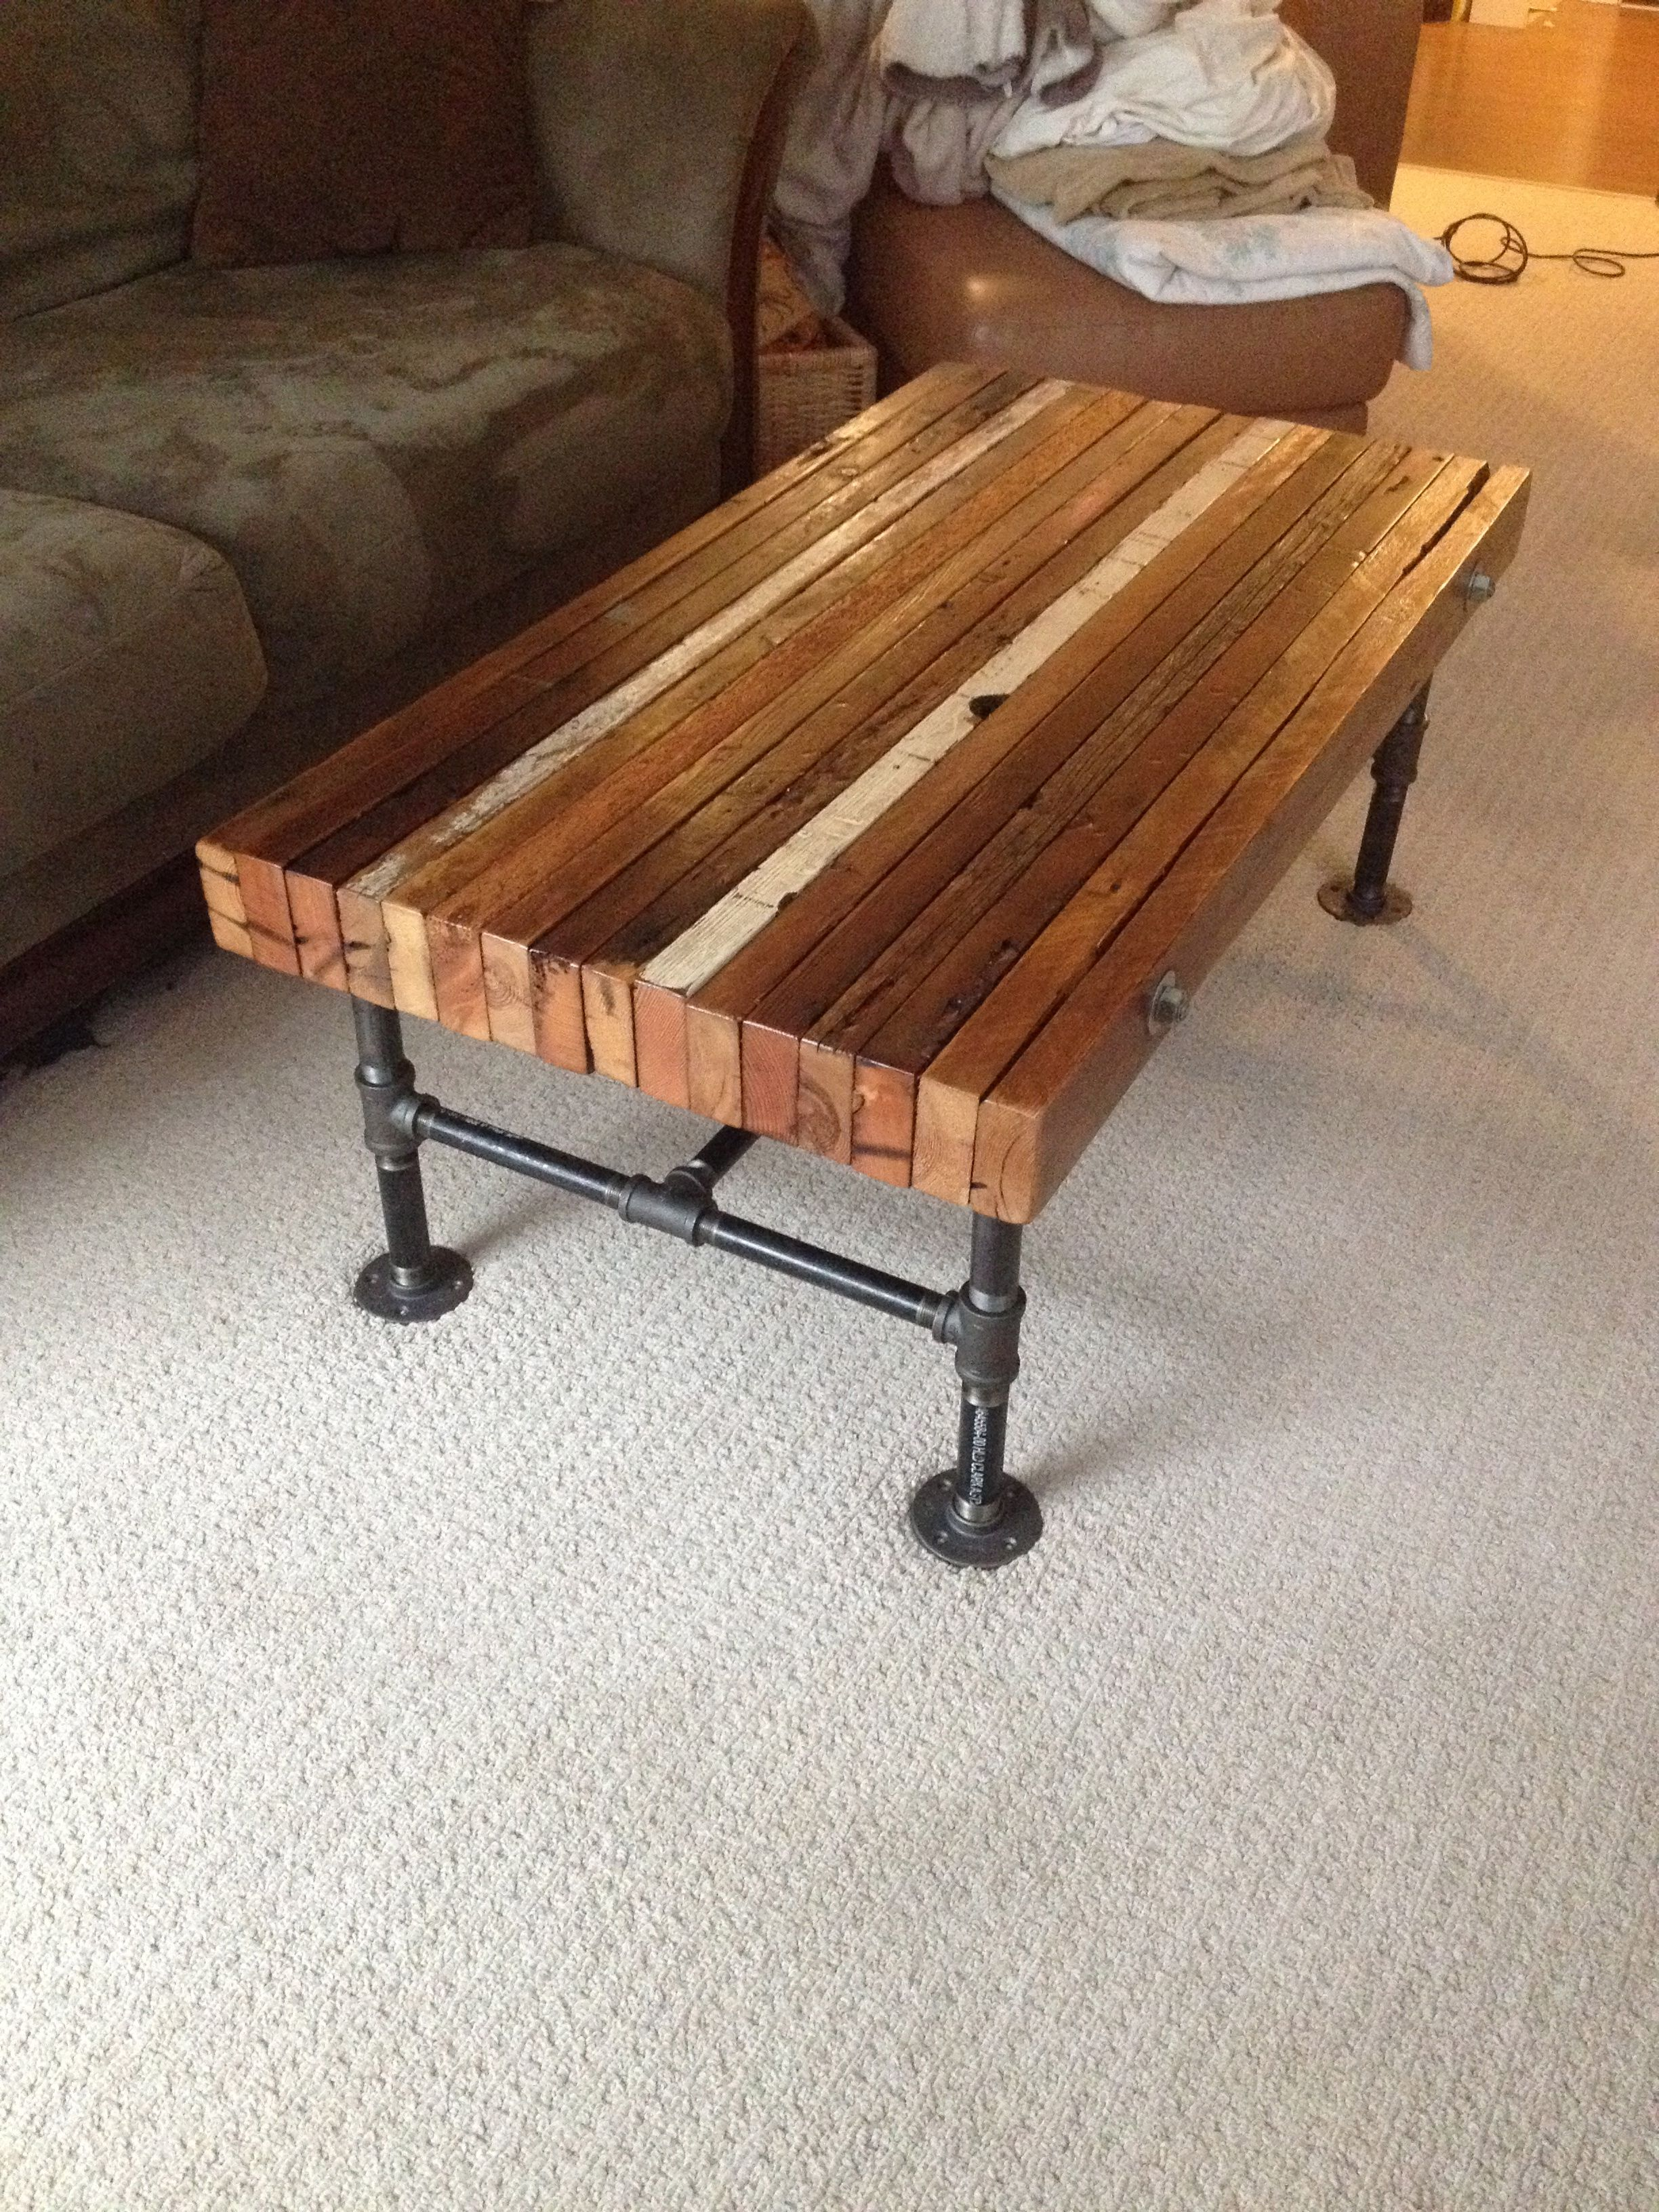 Coffee table made from old 2x4s and